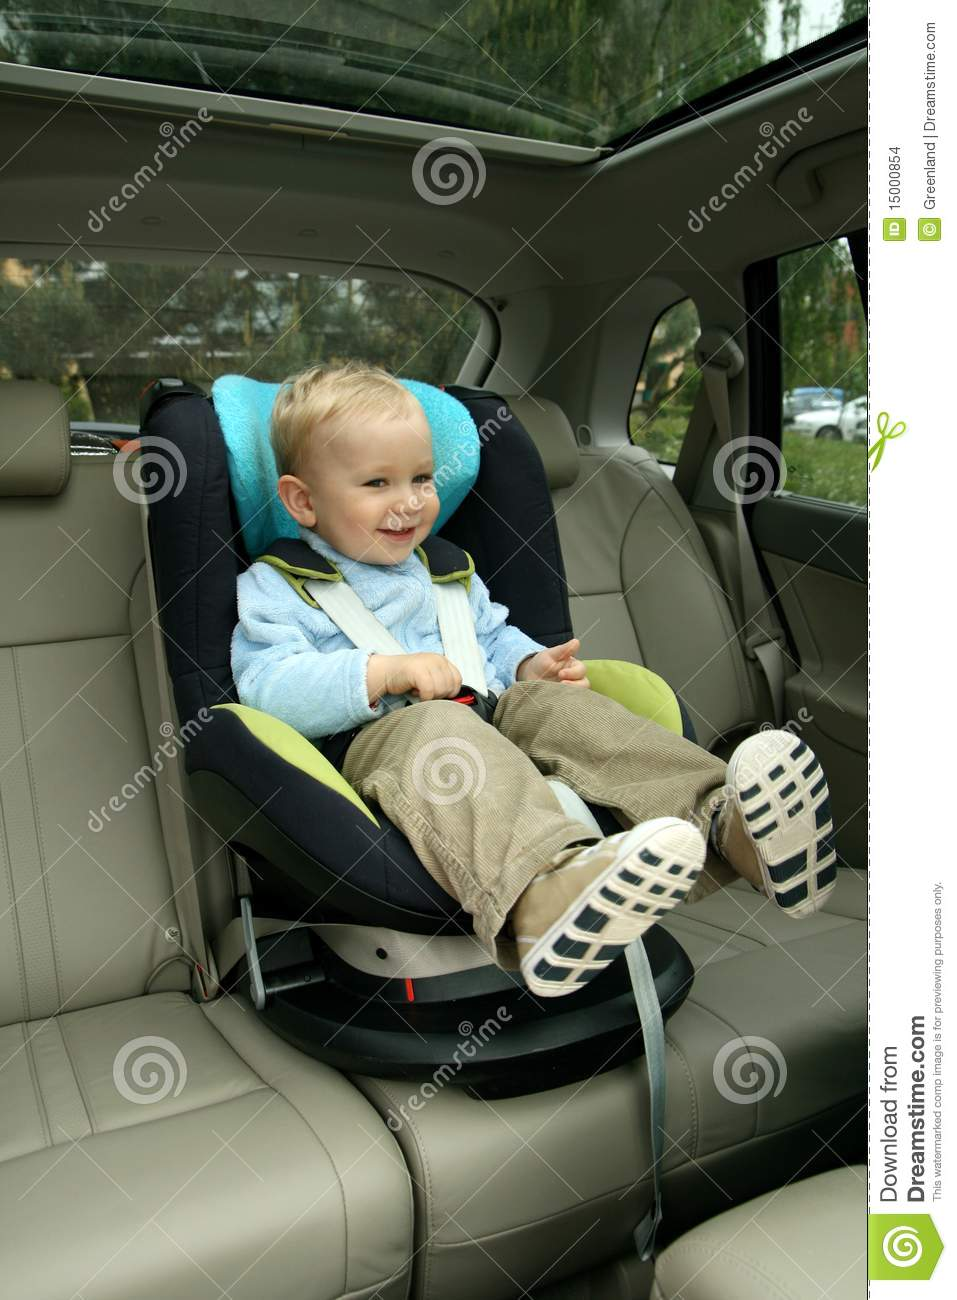 Baby Toddler Seat Baby In Car Seat Stock Photo Image Of Security Face